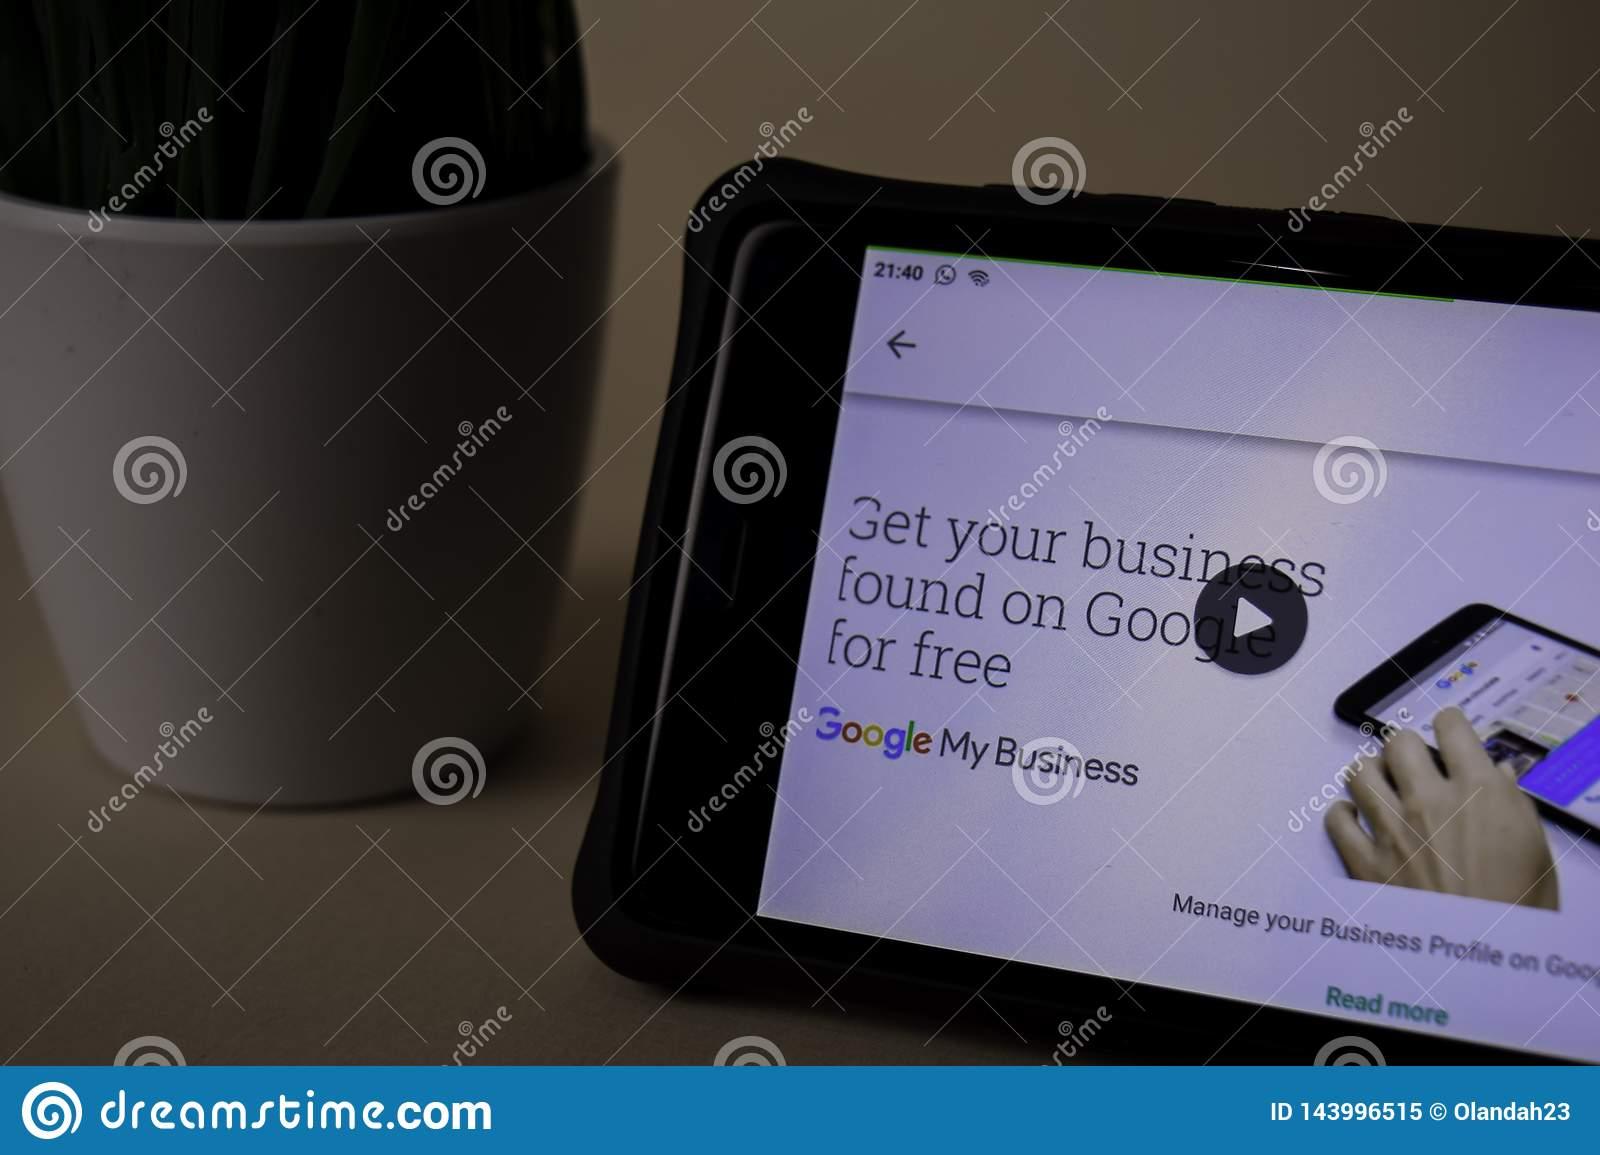 Google My Business dev application on Smartphone screen. My Business is a freeware